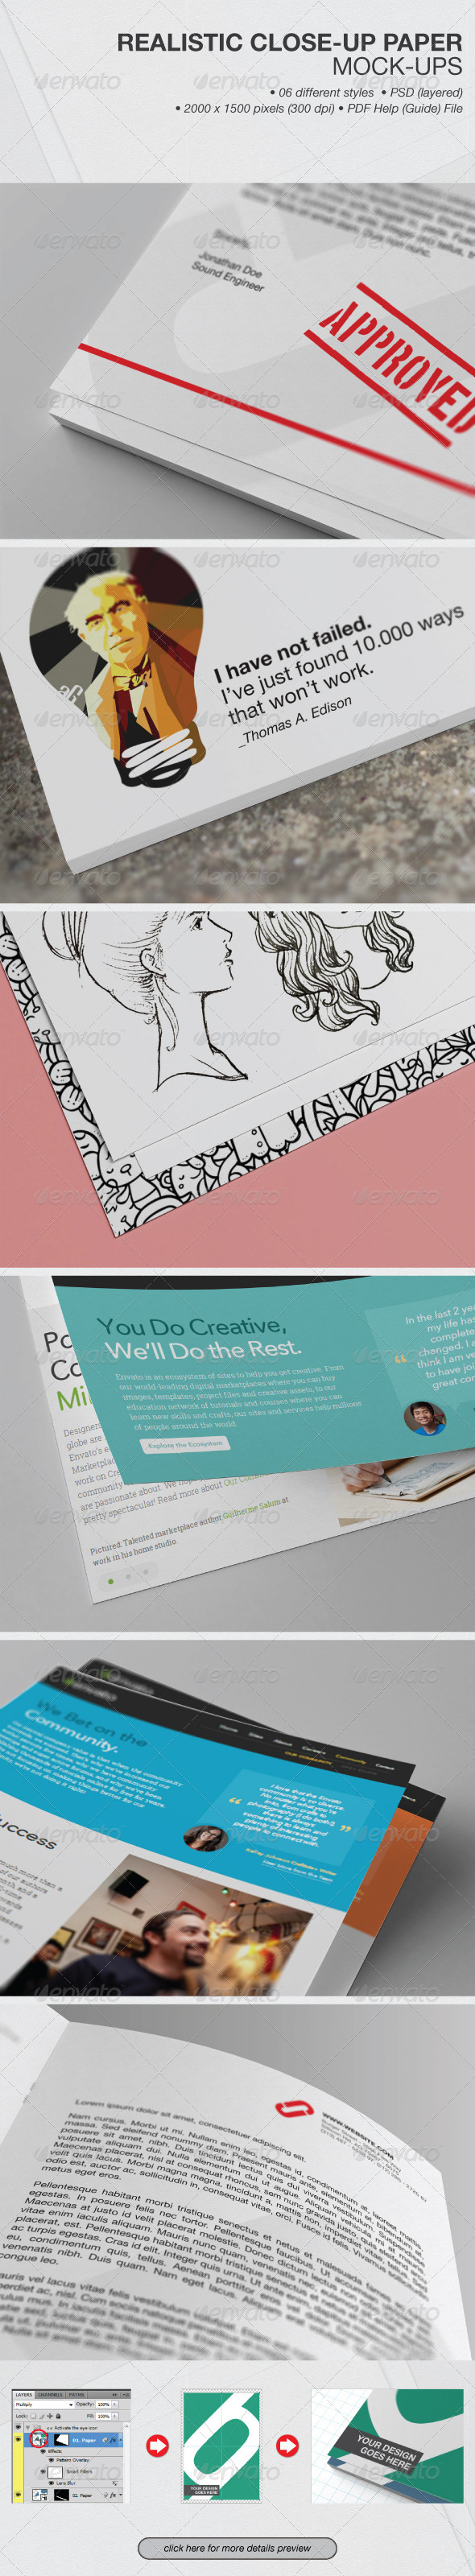 Realistic Close-up Paper Mock-ups - Product Mock-Ups Graphics